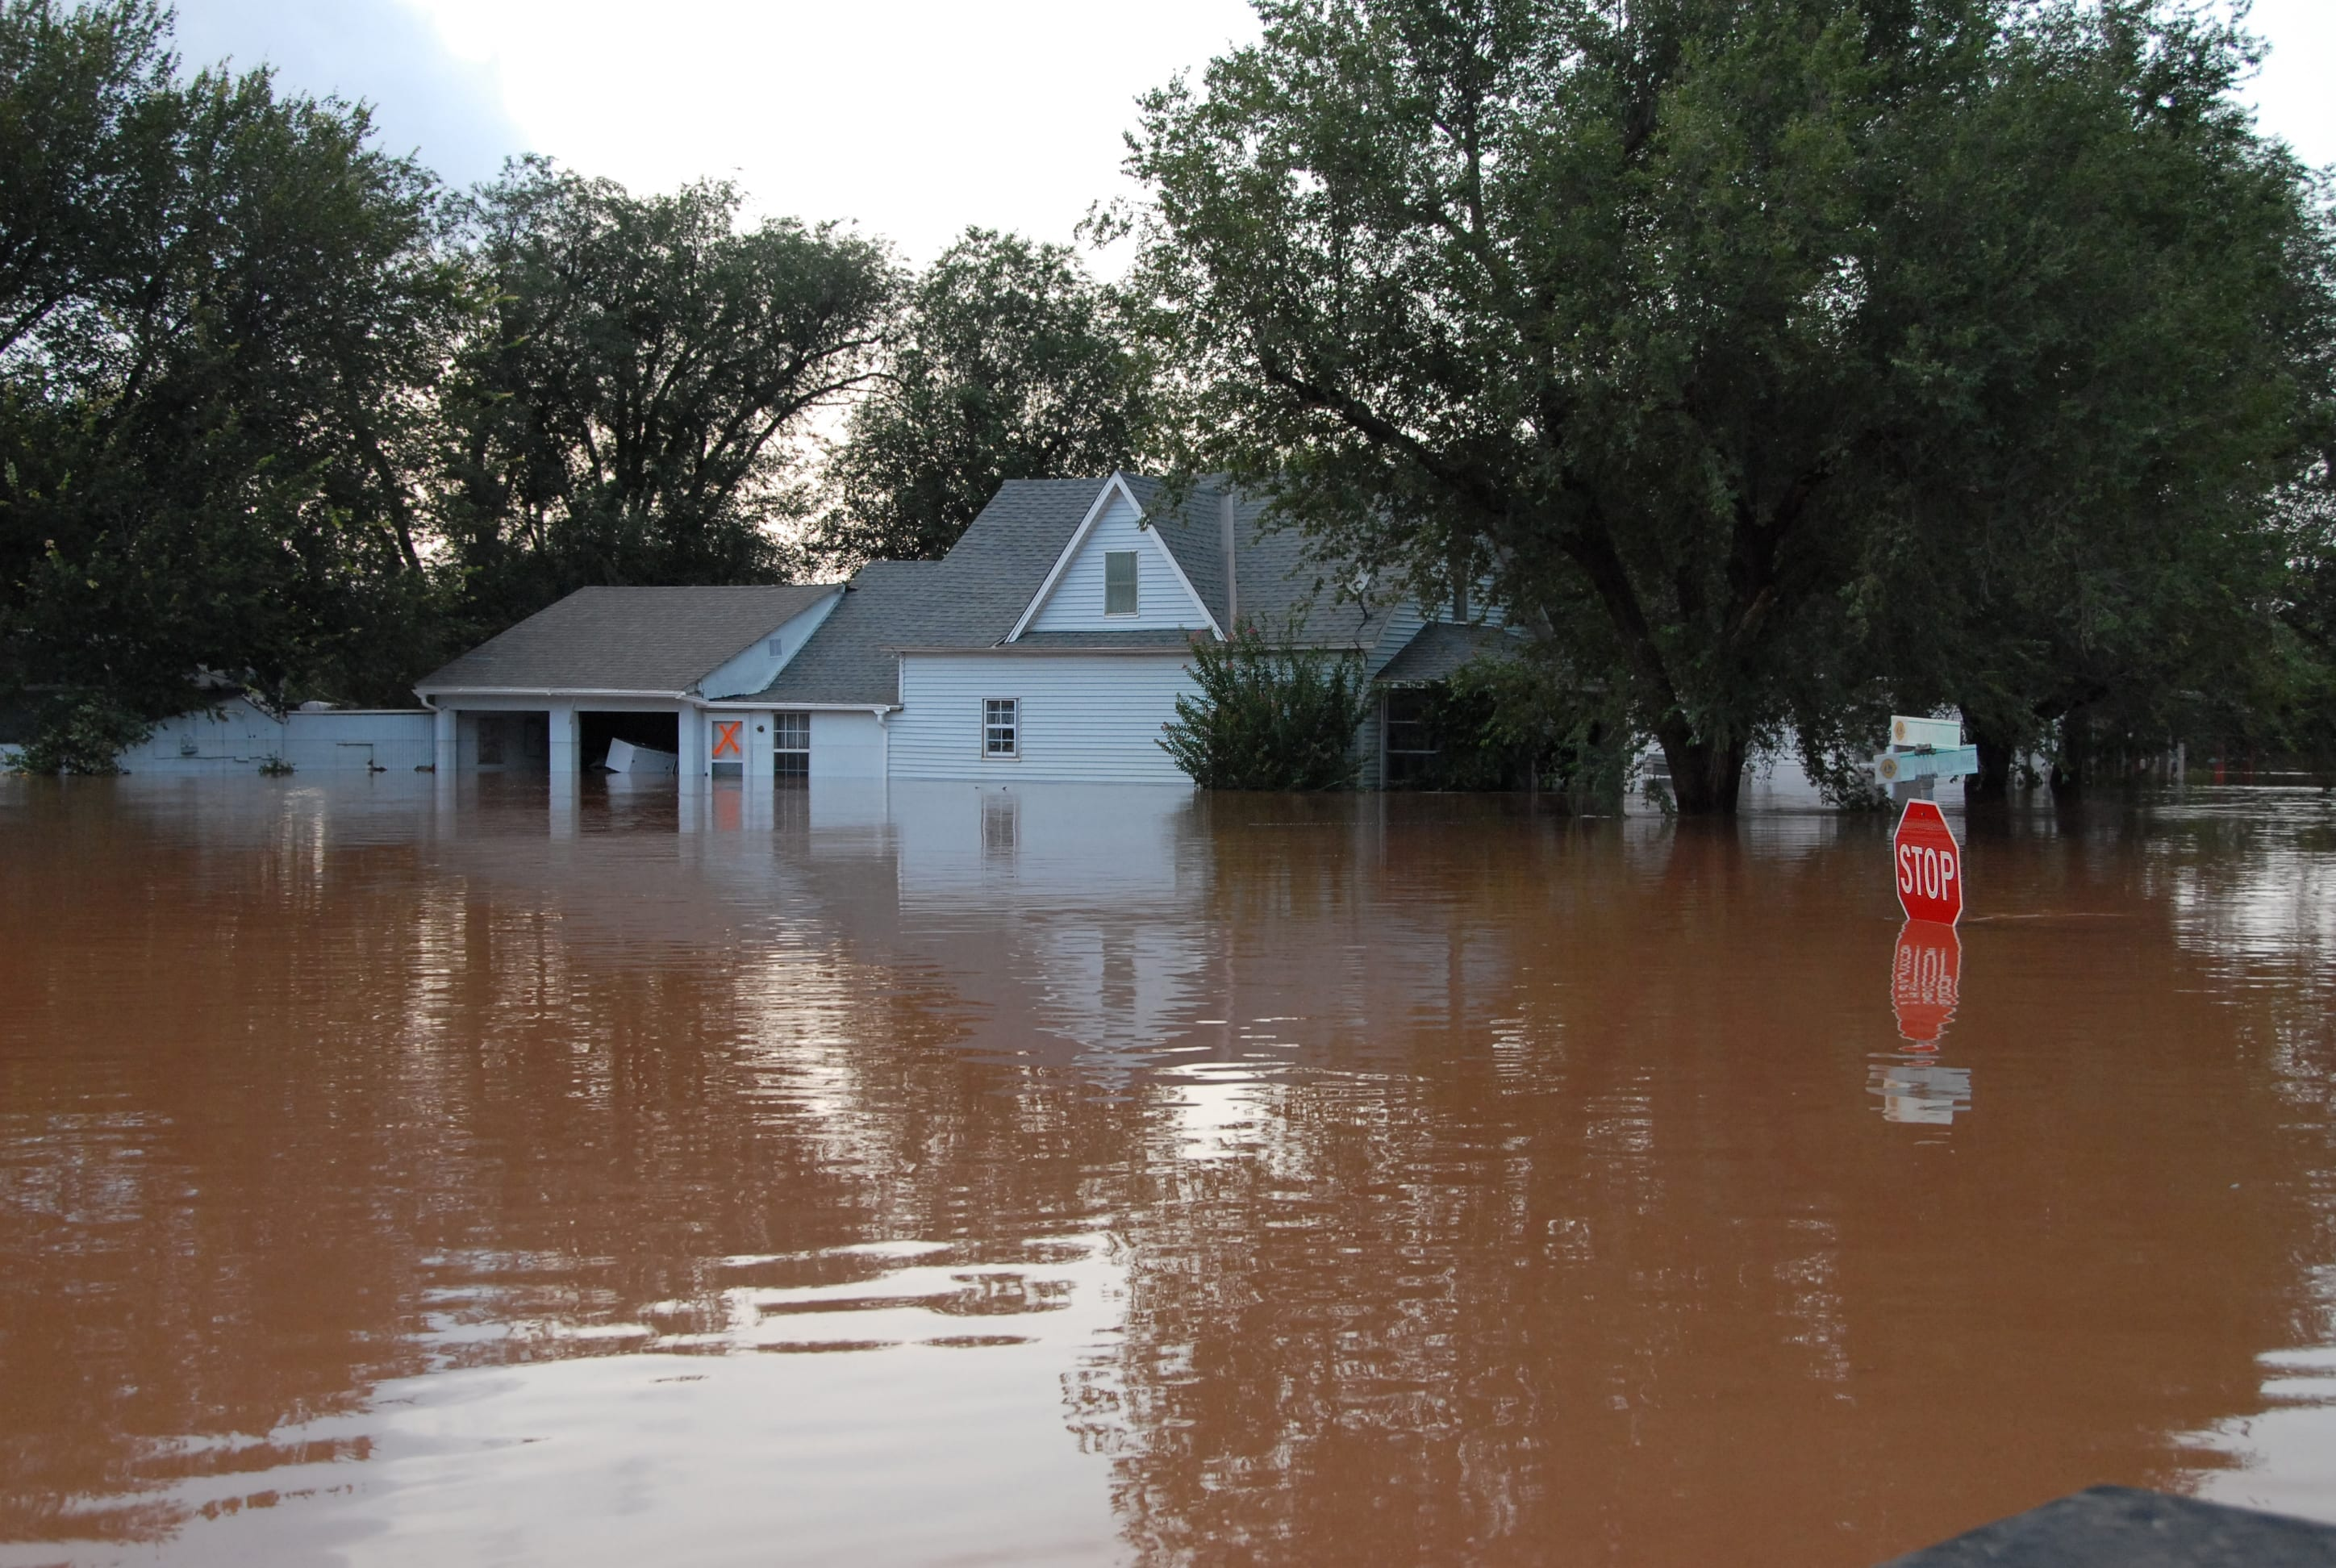 A flooded street in Kingfisher, Oklahoma, with water engulfing a house and standing nearly as high as a stop sign.